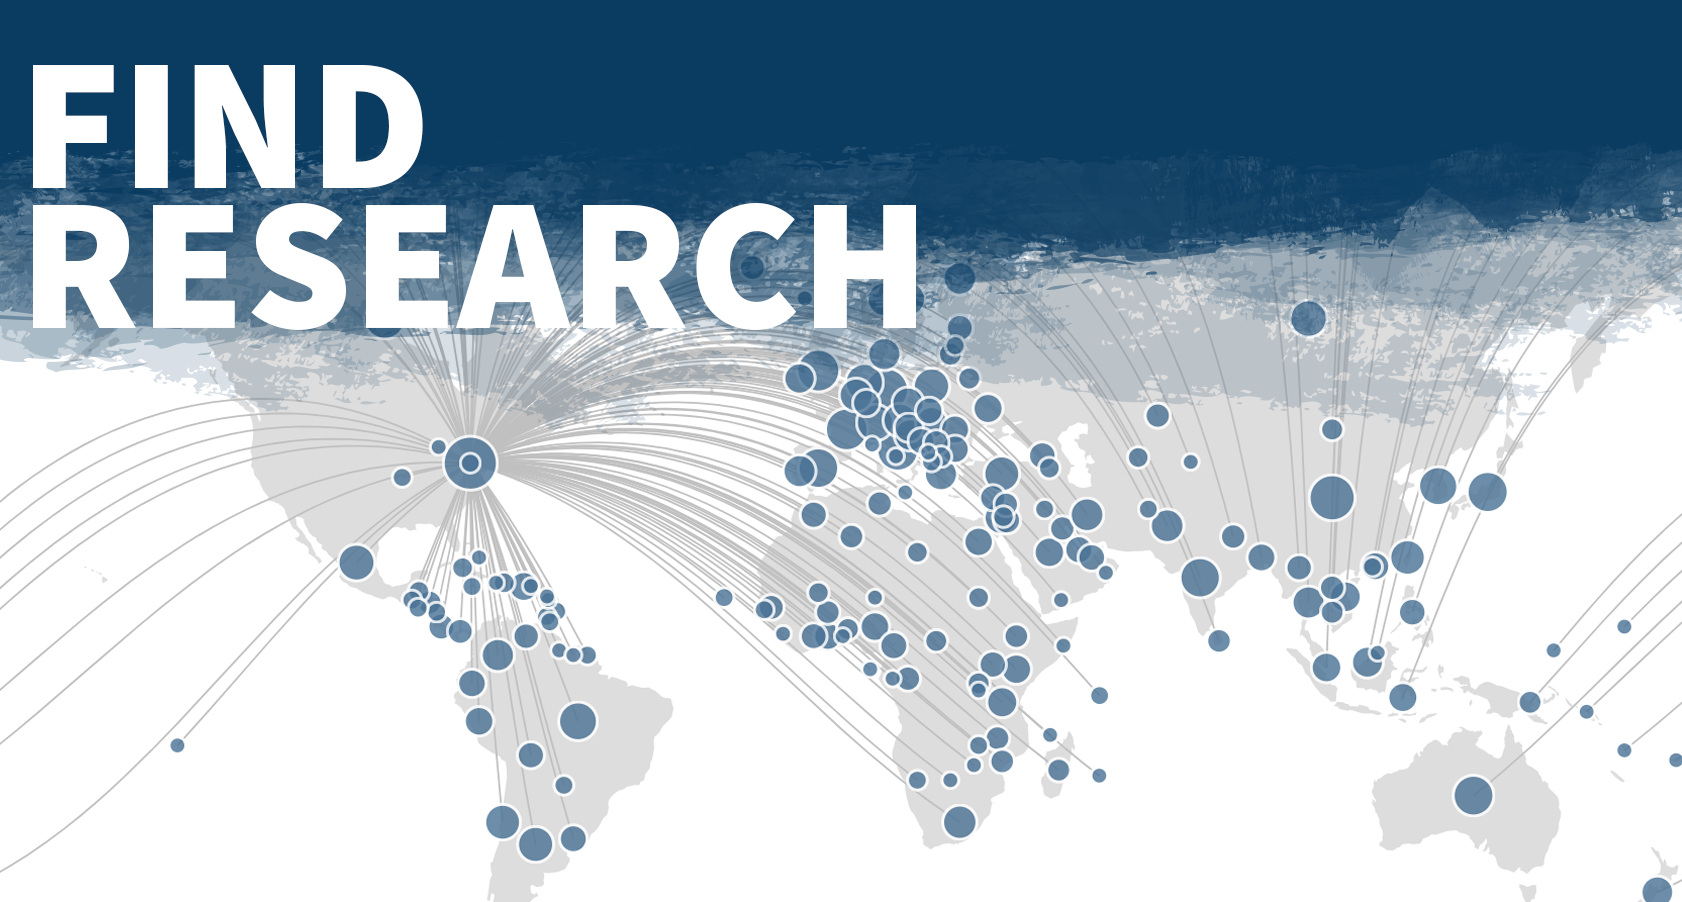 FIND RESEARCH: An image of a global map showing dots with locations of Penn State Research collaboration.